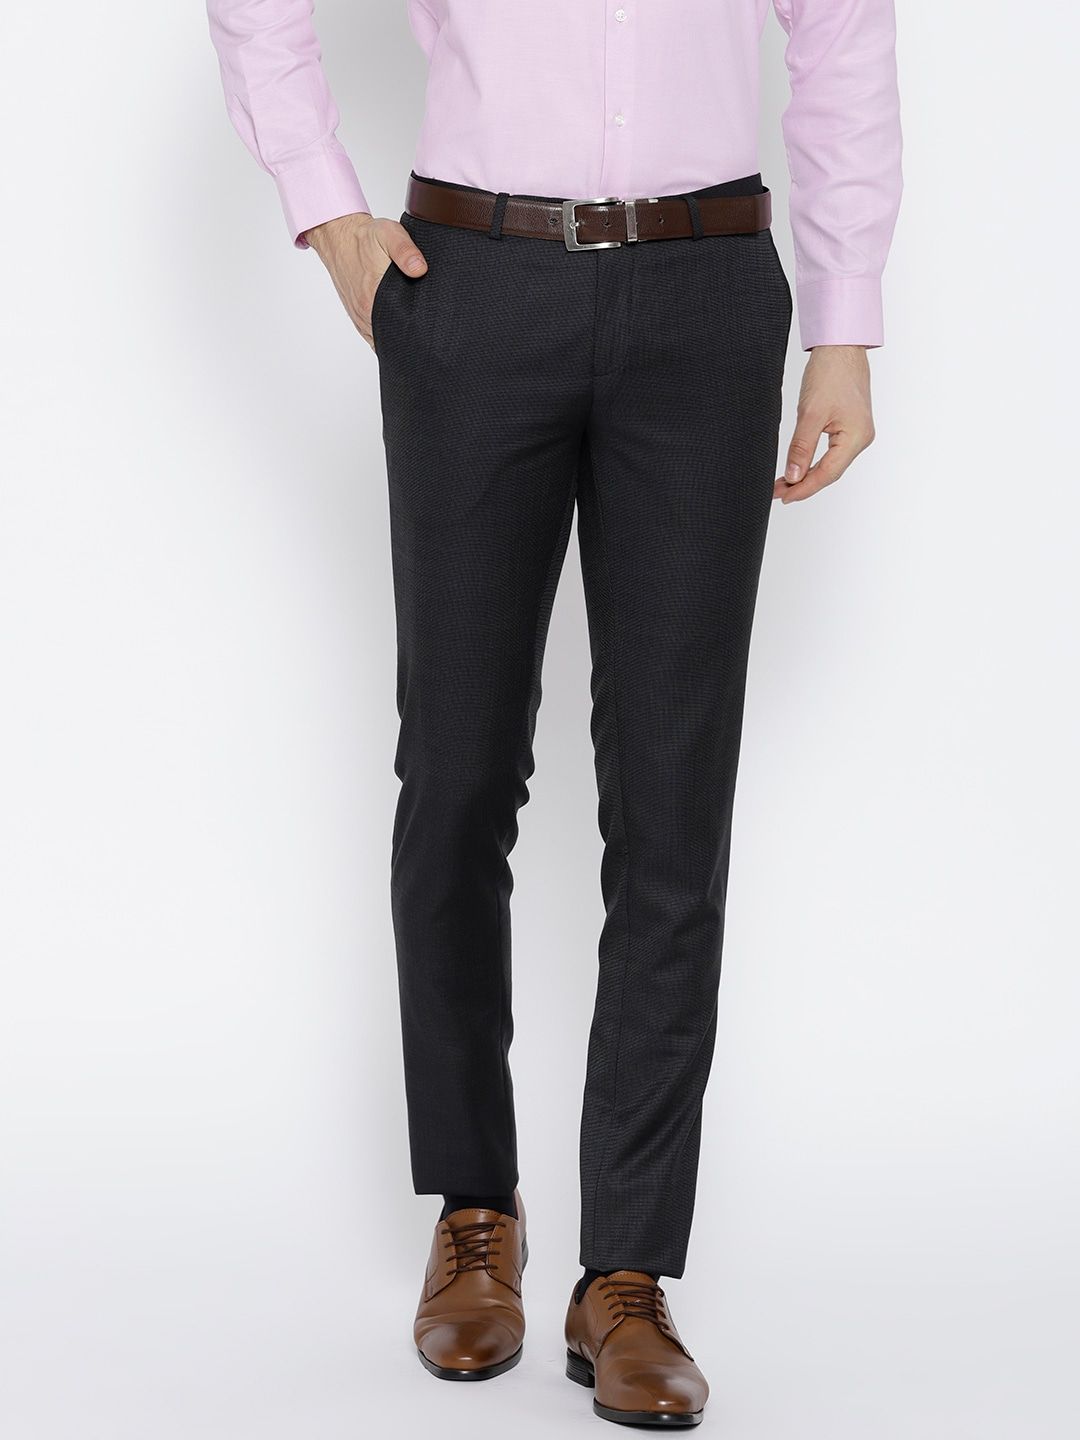 4b17ccb8c94 J Hampstead Trousers - Buy J Hampstead Trousers online in India